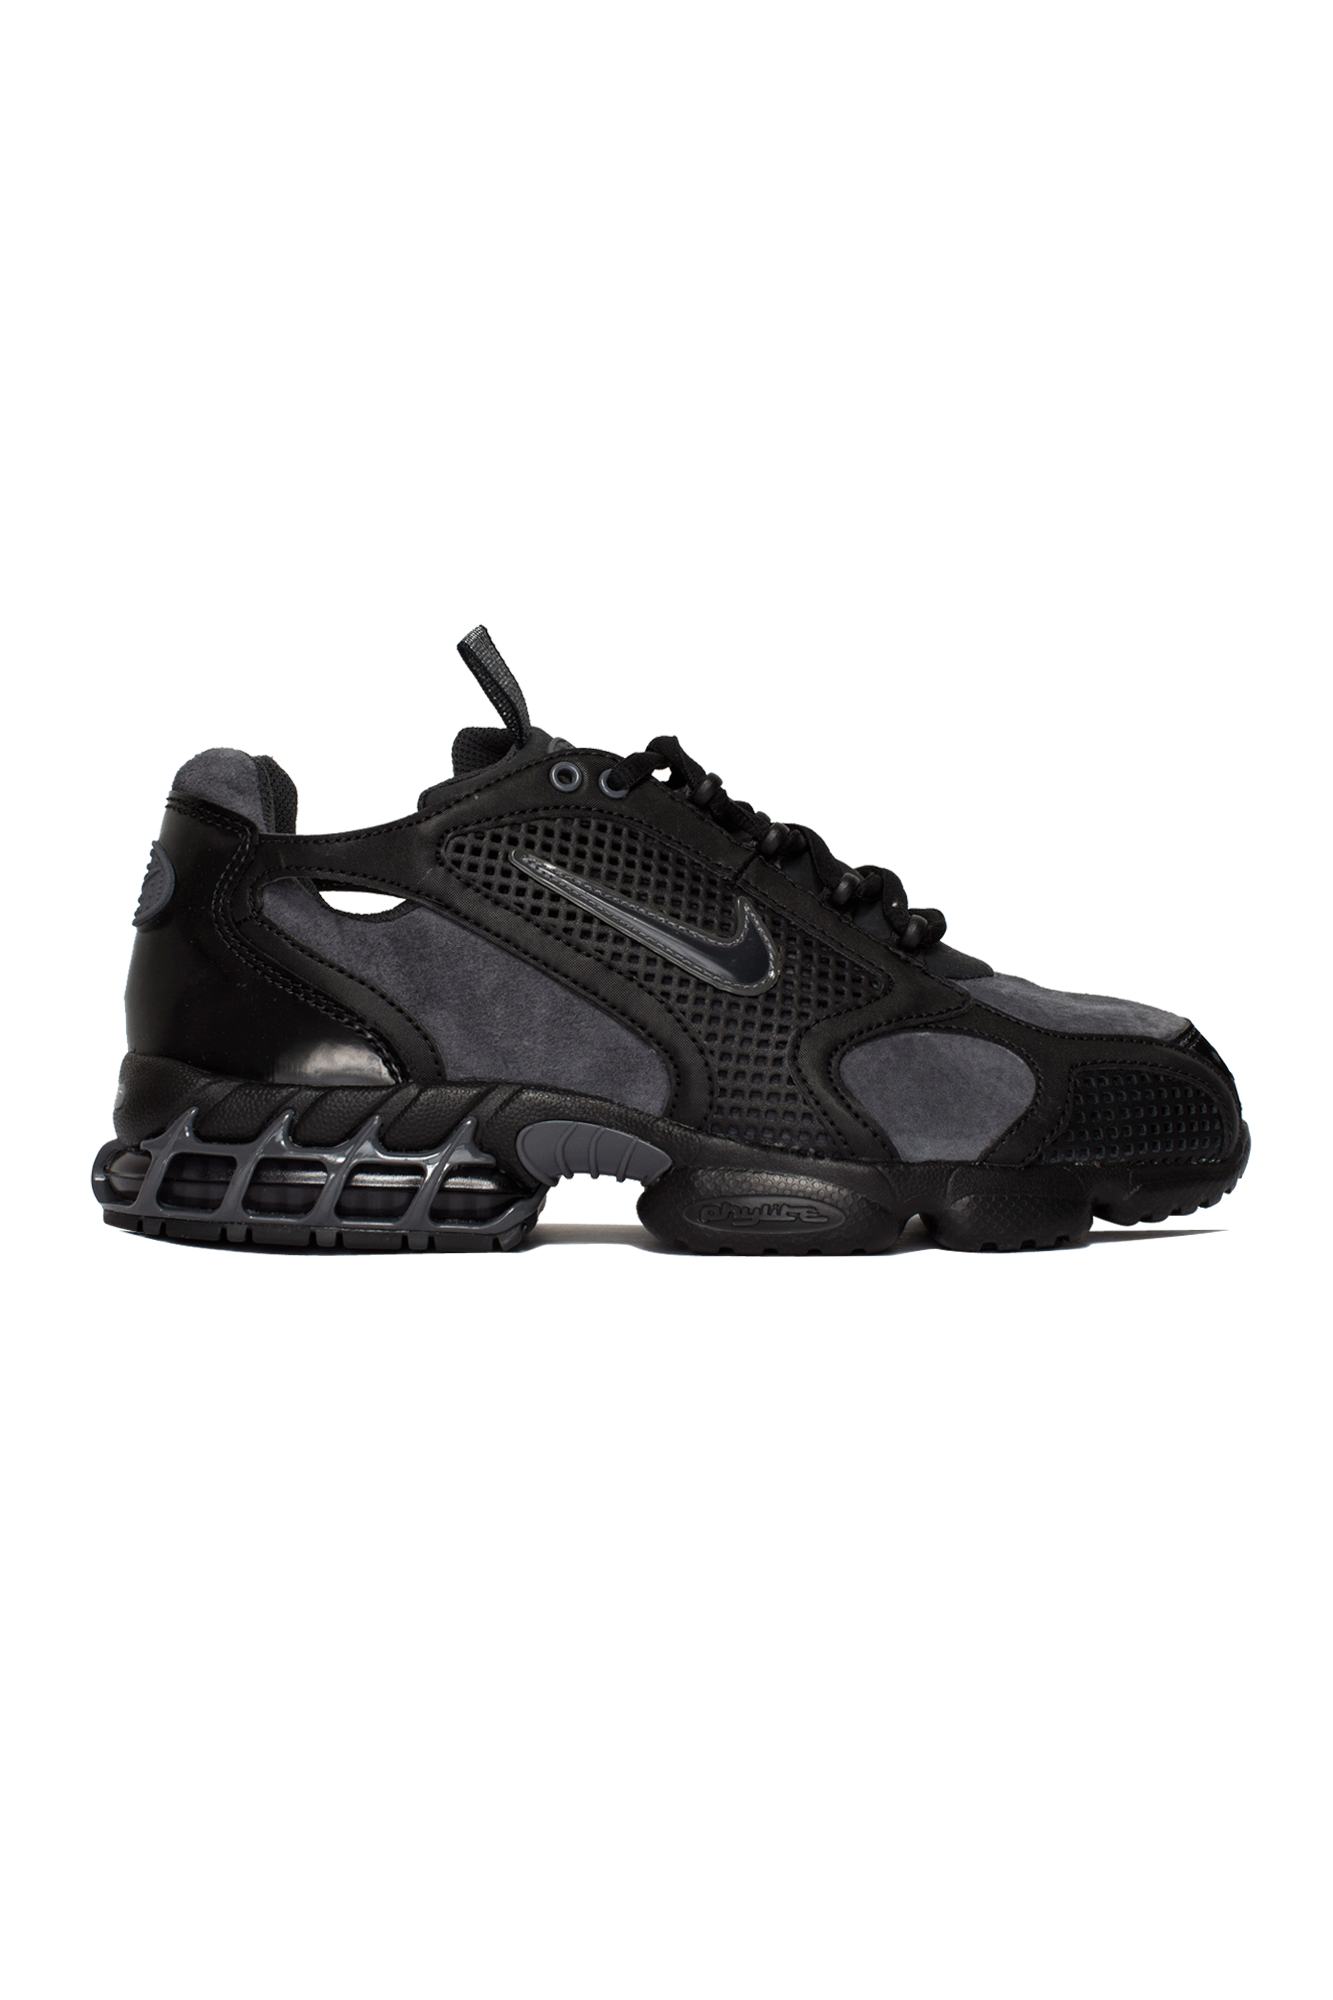 Air Zoom Spiridon Cage 2 SE Black